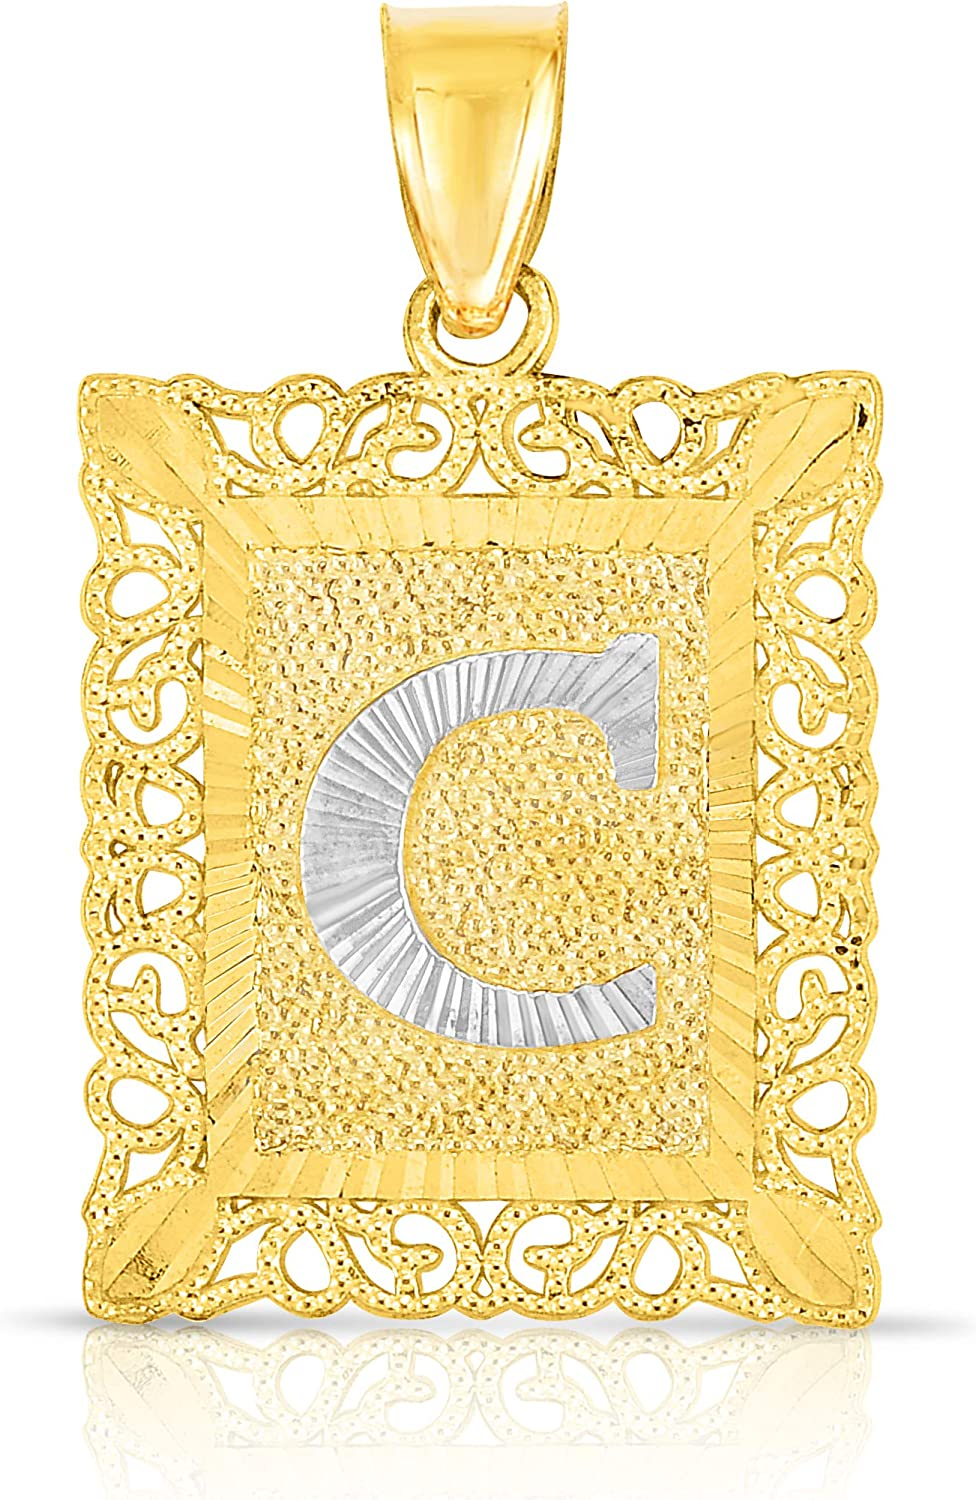 Floreo 10k Yellow and White Gold A-Z Initial Square Pendant with Optional Necklace, 2 Sizes